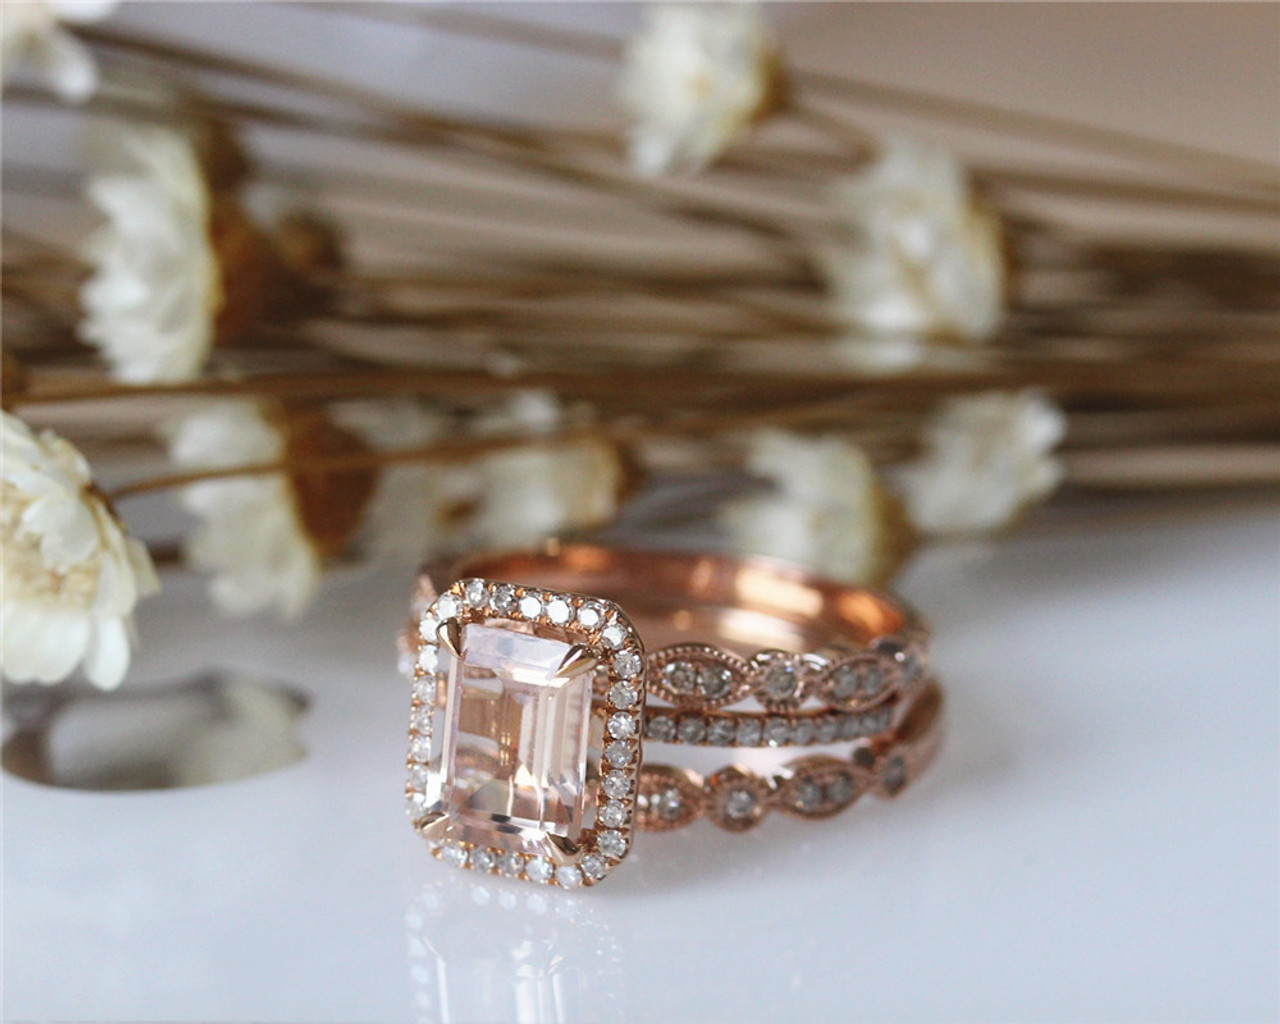 40ed8806e323bf 3PCS 14K Rose Gold Morganite Ring Set 8x10mm Emerald Cut Engagement Diamond  Ring Set ...